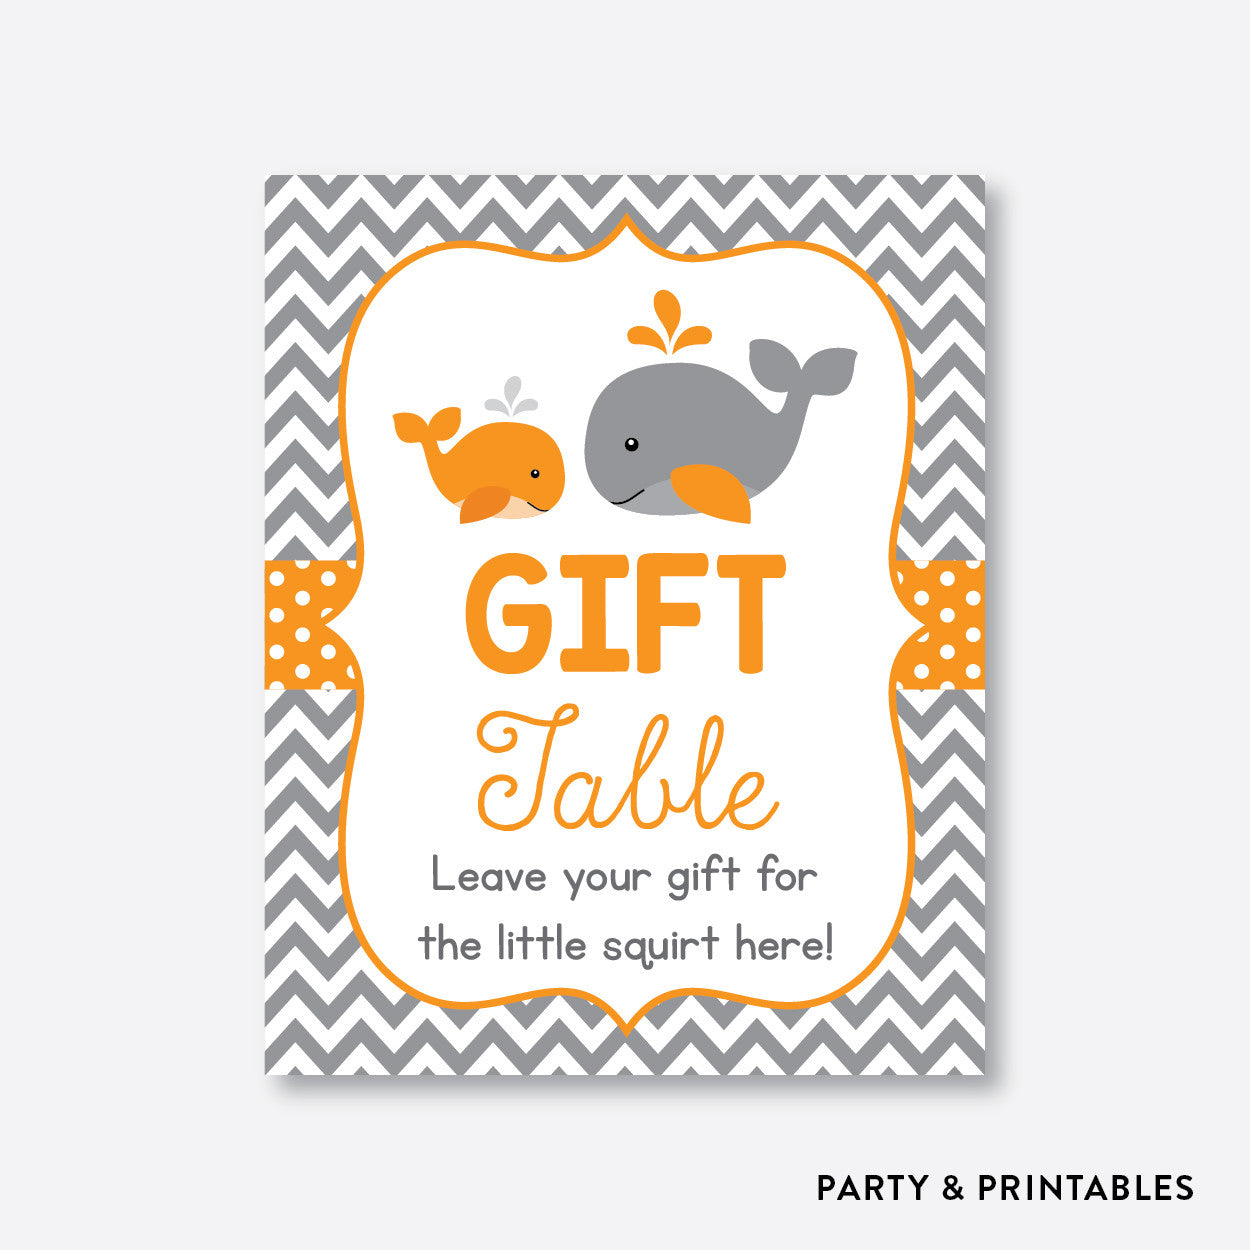 Whale Party Signs / Non-Personalized / Instant Download (SBS.55), party printables - Party and Printables